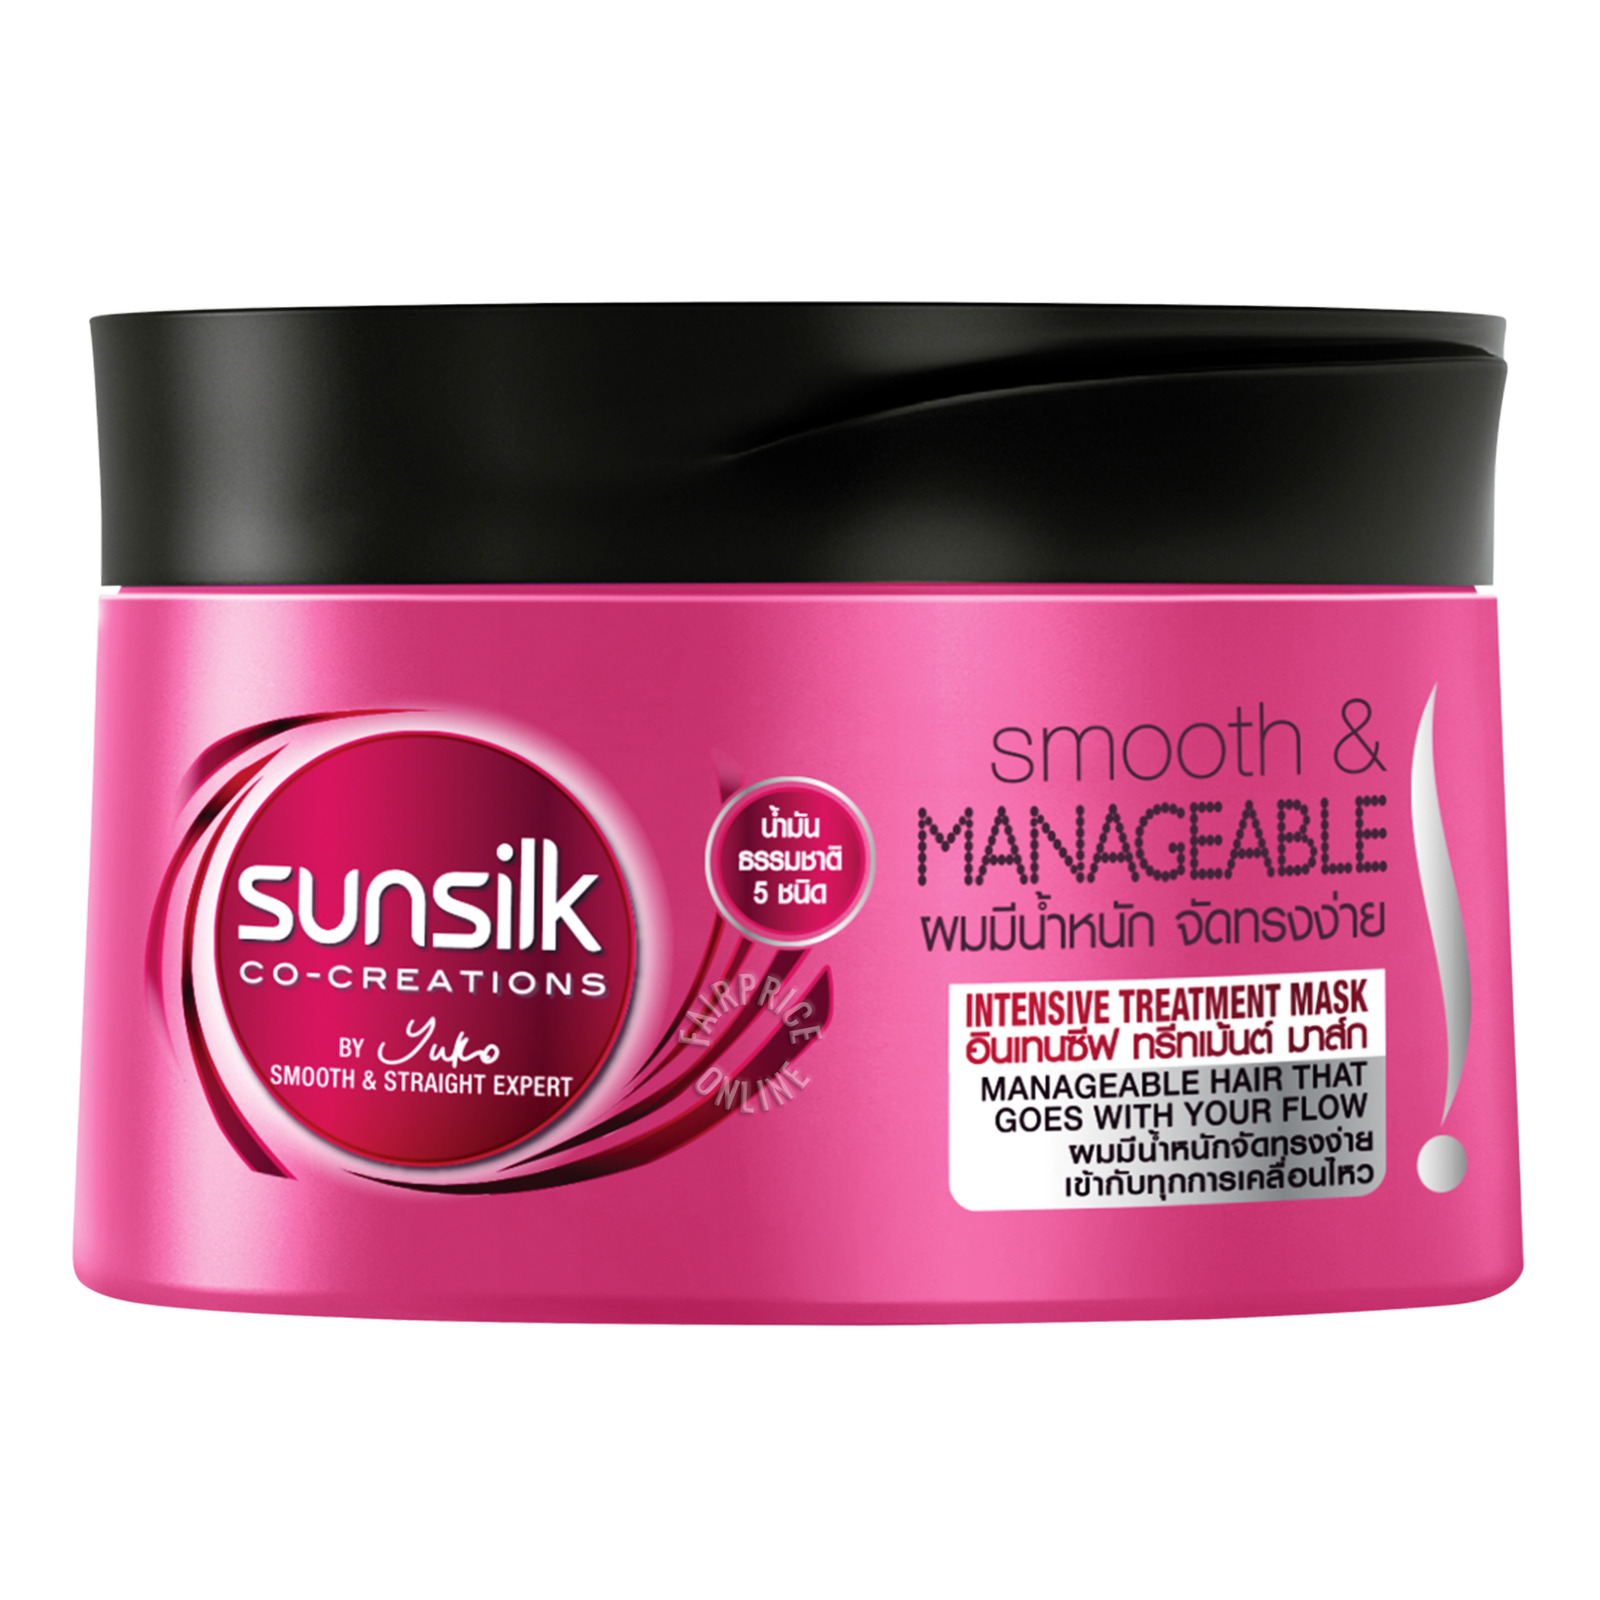 SUNSILK Smooth & Managable Intensive Treatment Mask 200ml